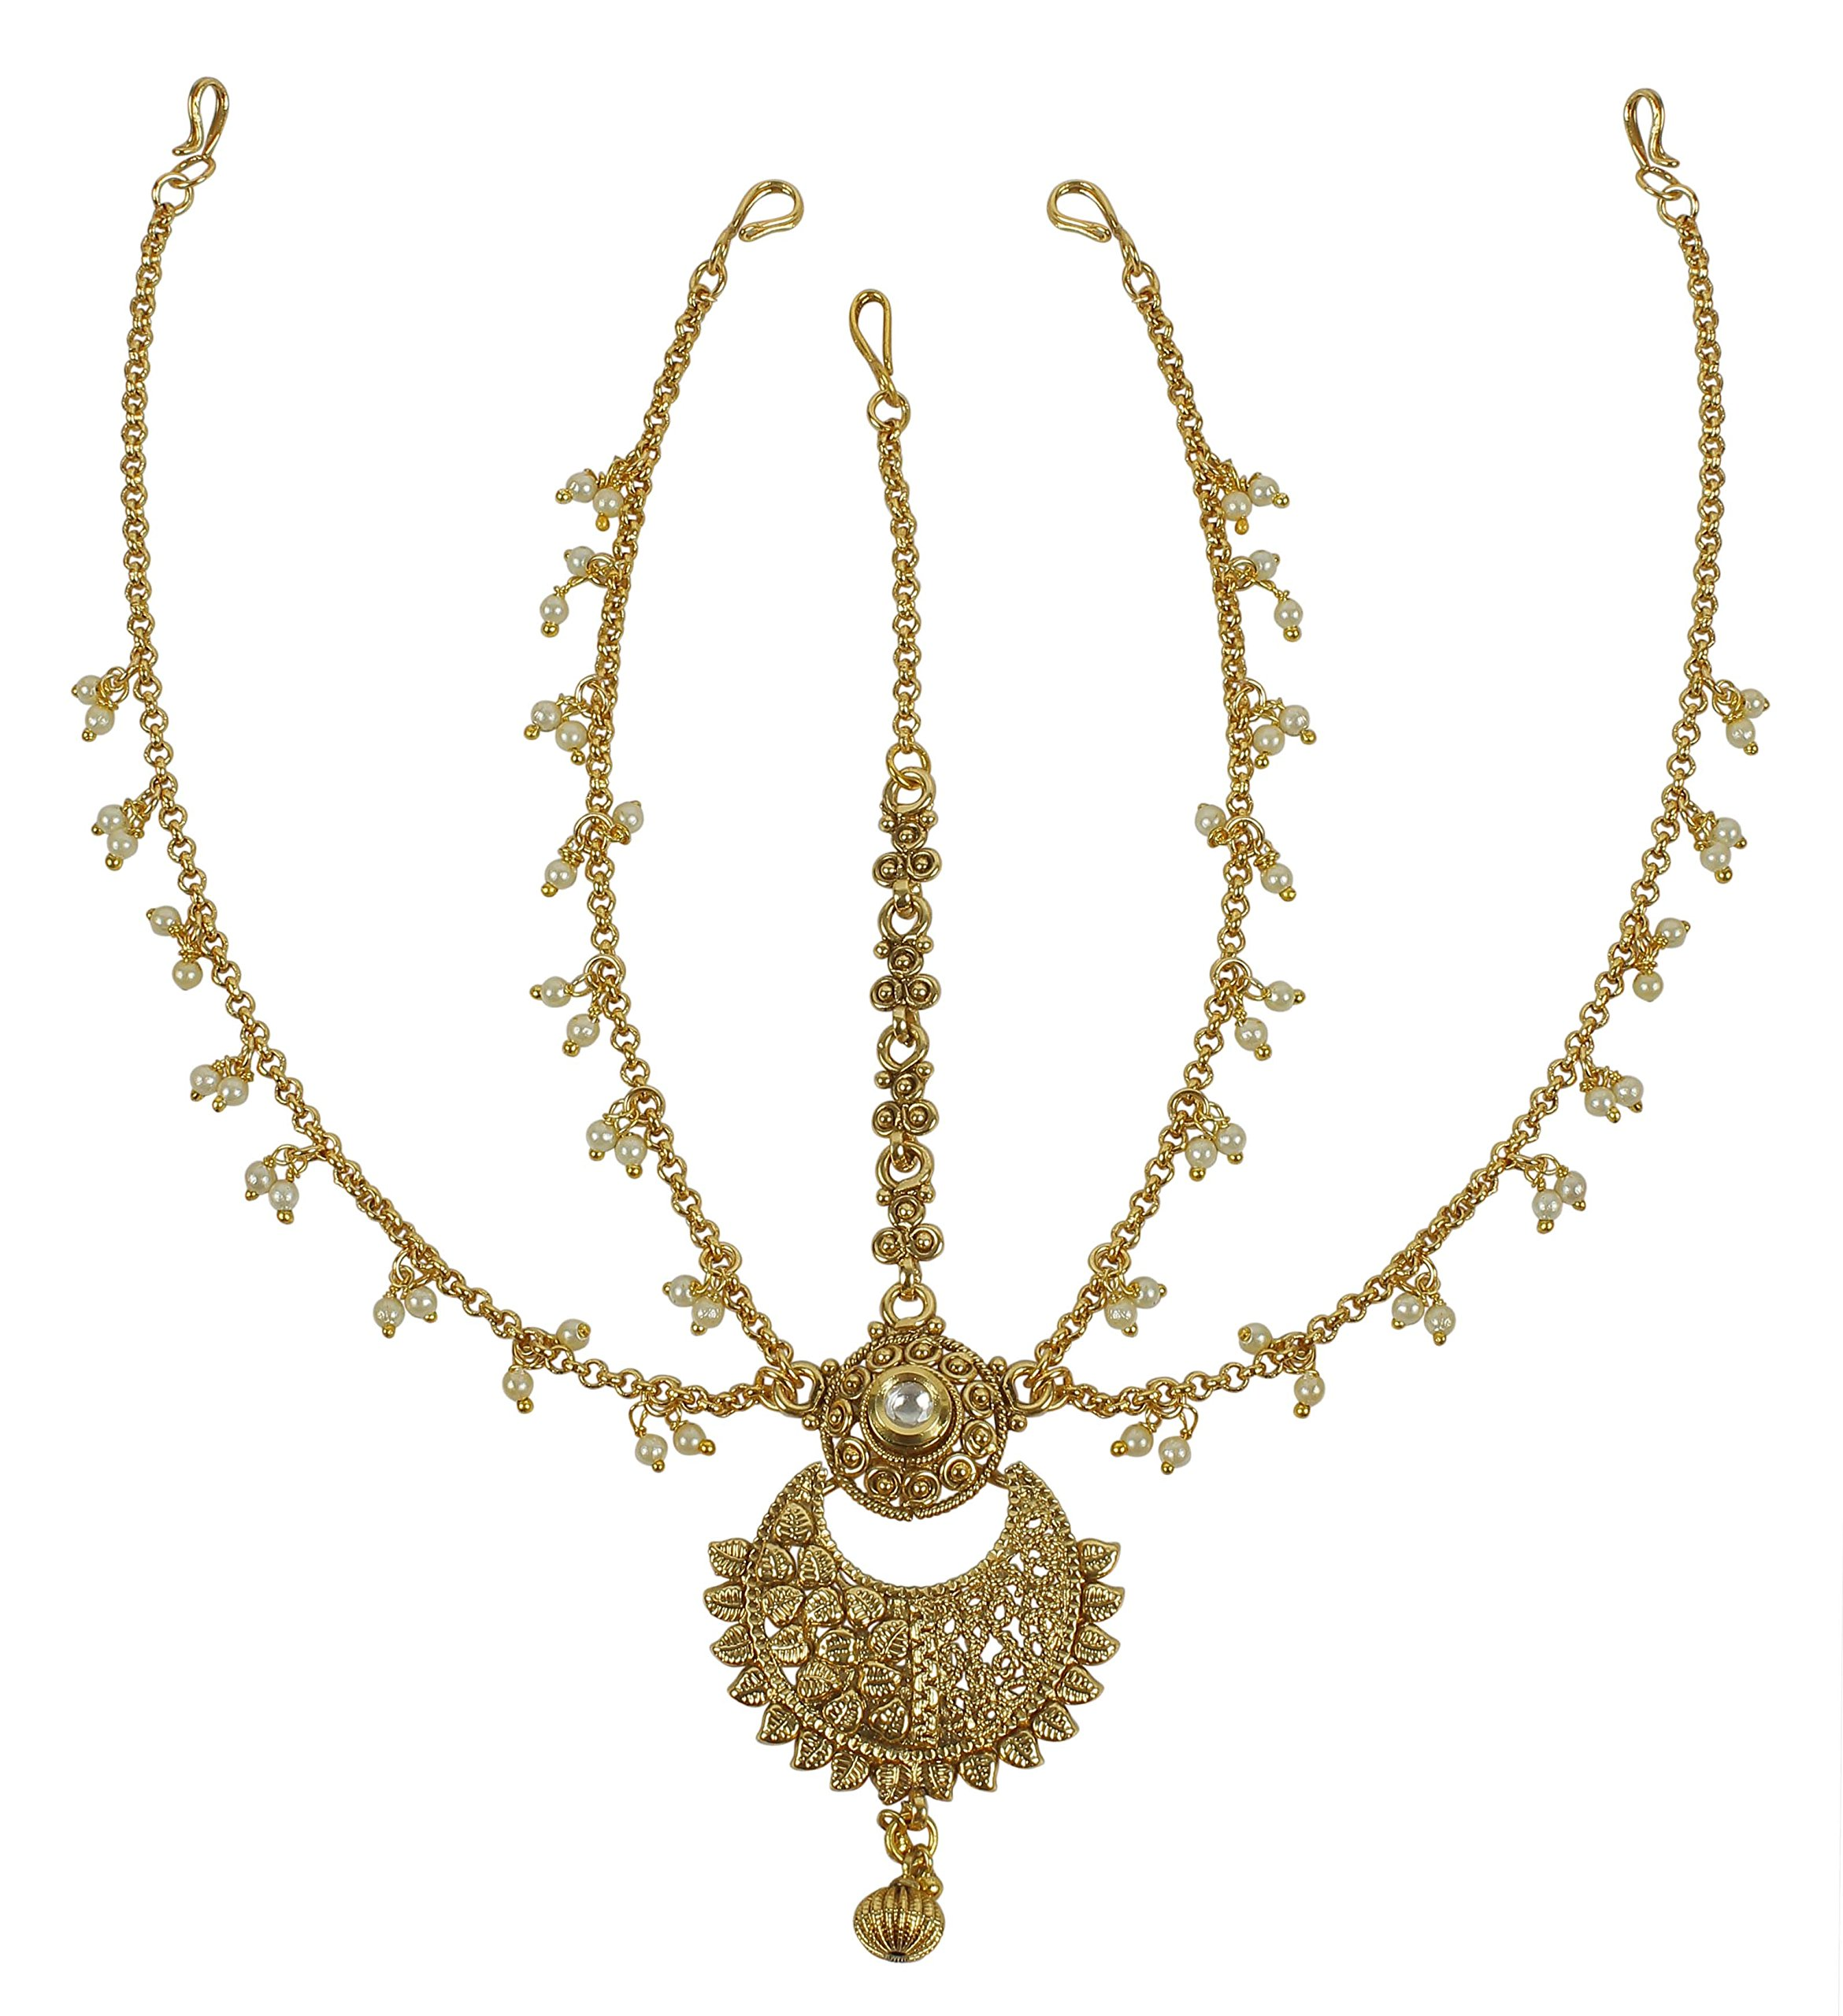 MUCH-MORE Beautiful Style Stunning Gold Plated Indian Matha Patti Head Partywear Jewelry for Women (49)